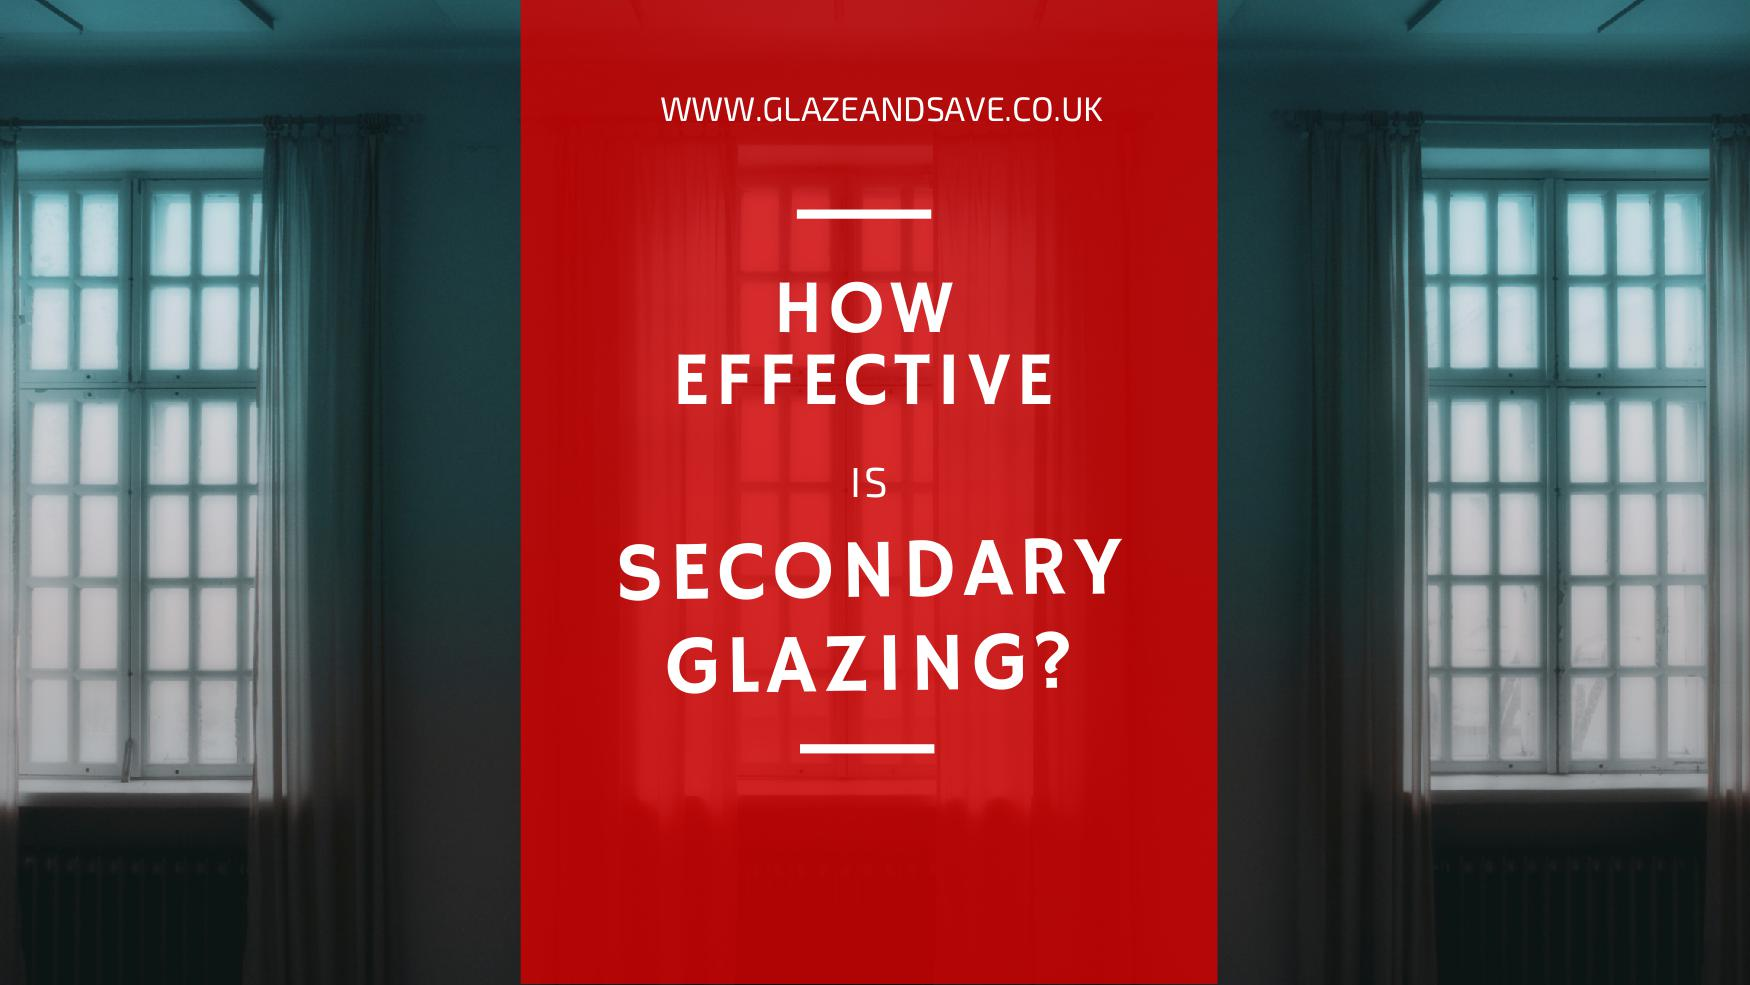 How effective is secondary glazing how effective is secondary glazing by glaze and save bespoke magnetic secondary glazing and draught proofing solutioingenieria Choice Image